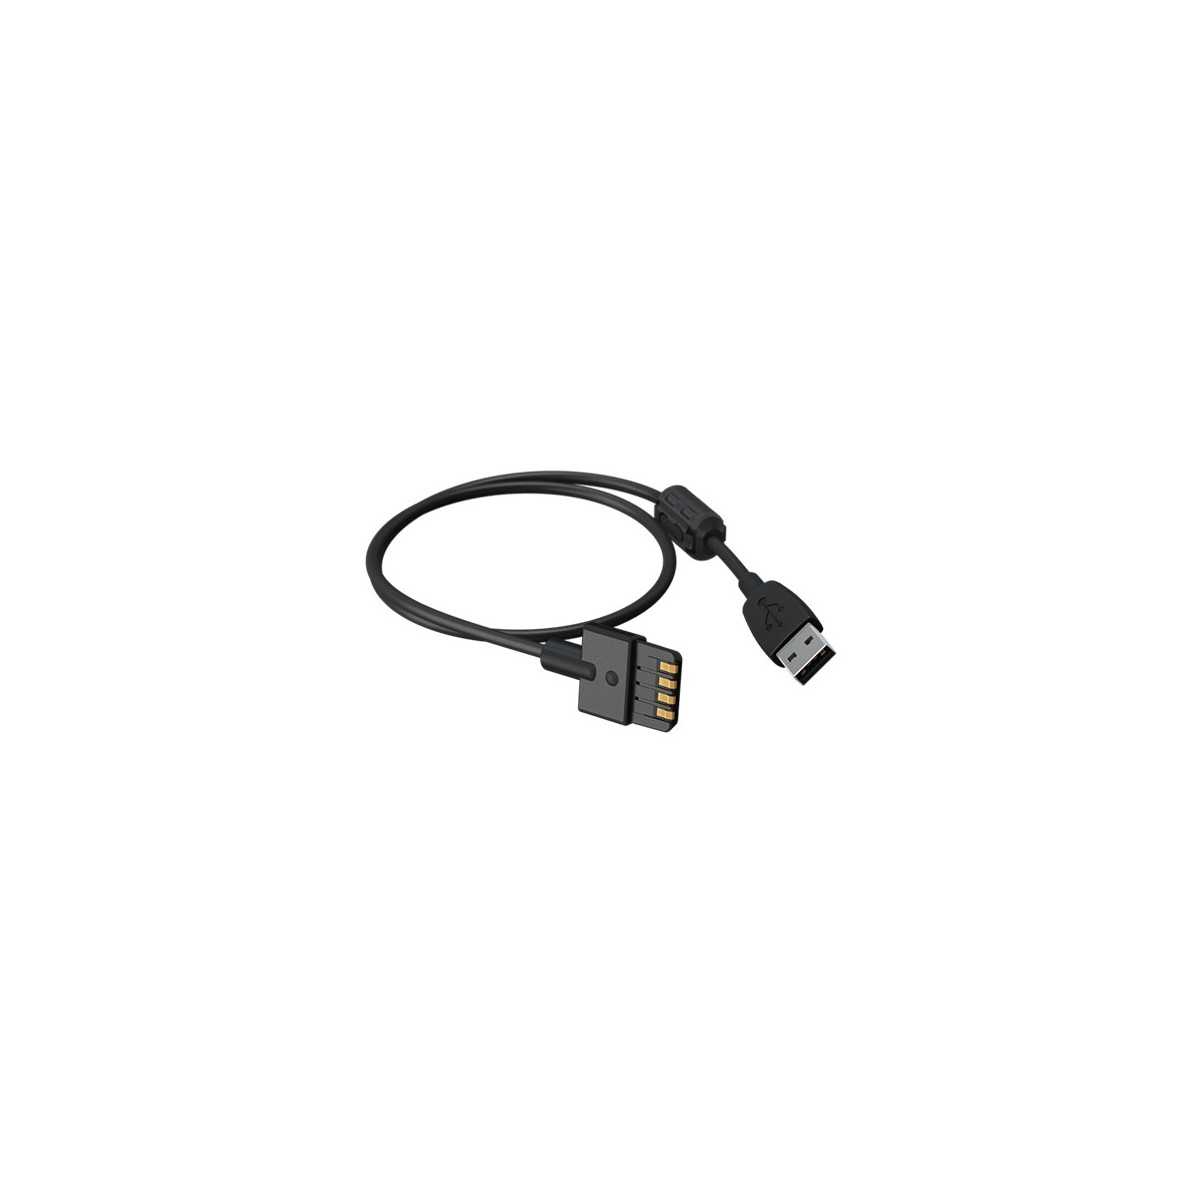 Suunto EON Steel USB cable